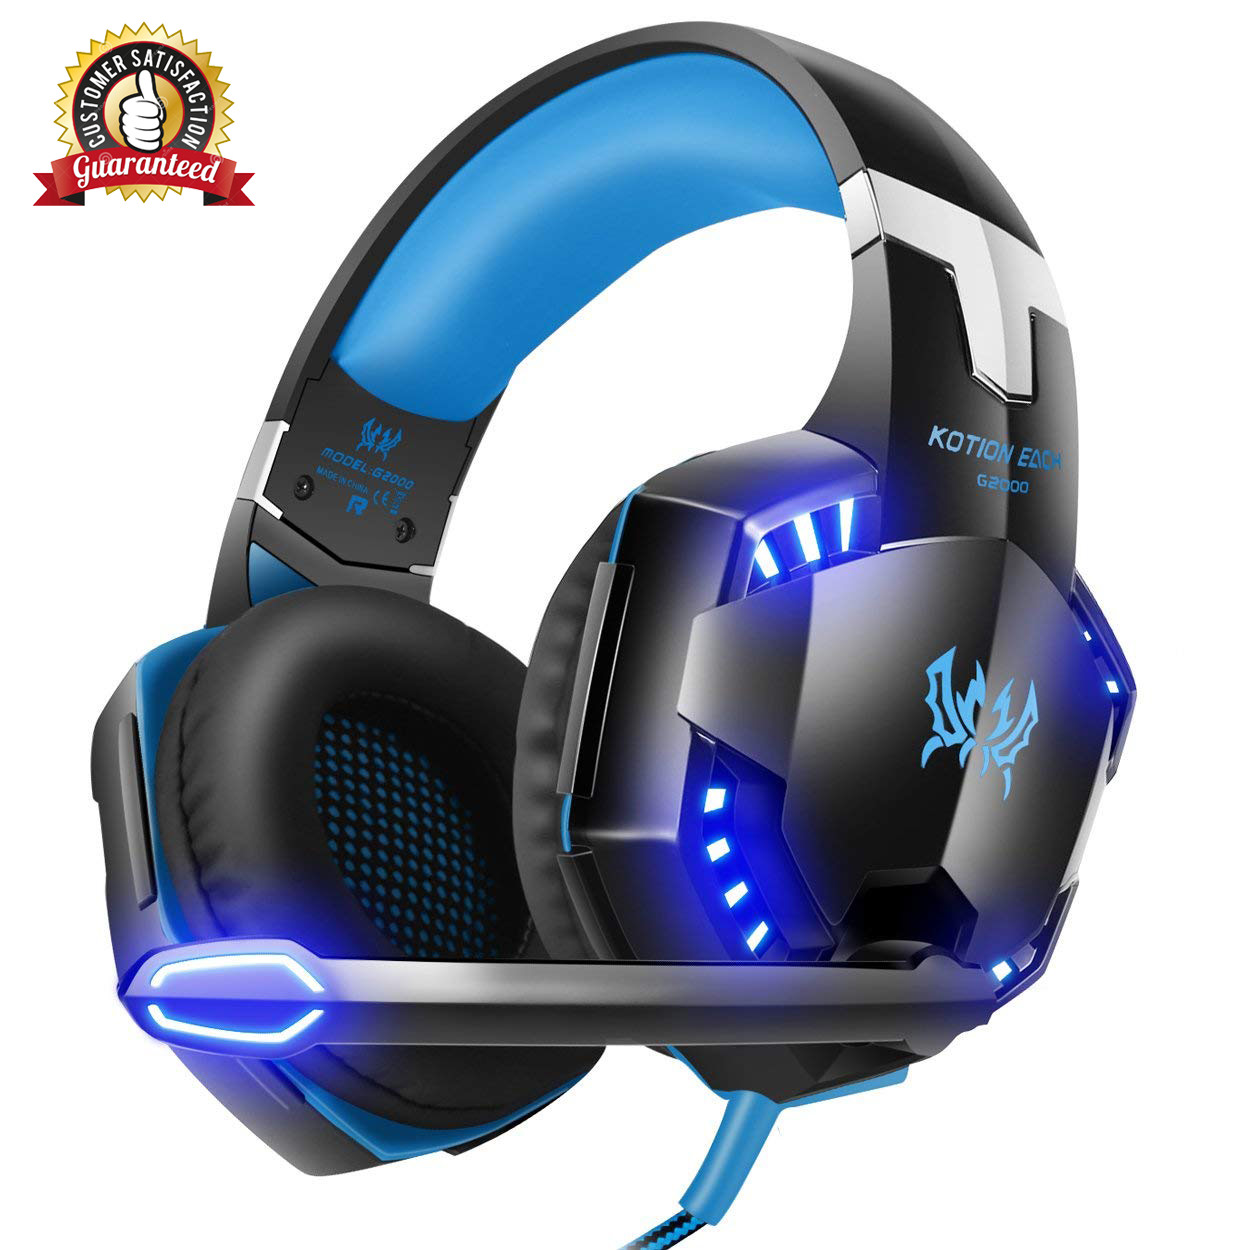 Stereo Gaming Headset for PS4, PC, Xbox One Controller, Noise Cancelling Over Ear Headphones with Mic, LED Light, Bass Surround, Soft Memory Earmuffs for Laptop Mac Nintendo Switch Games